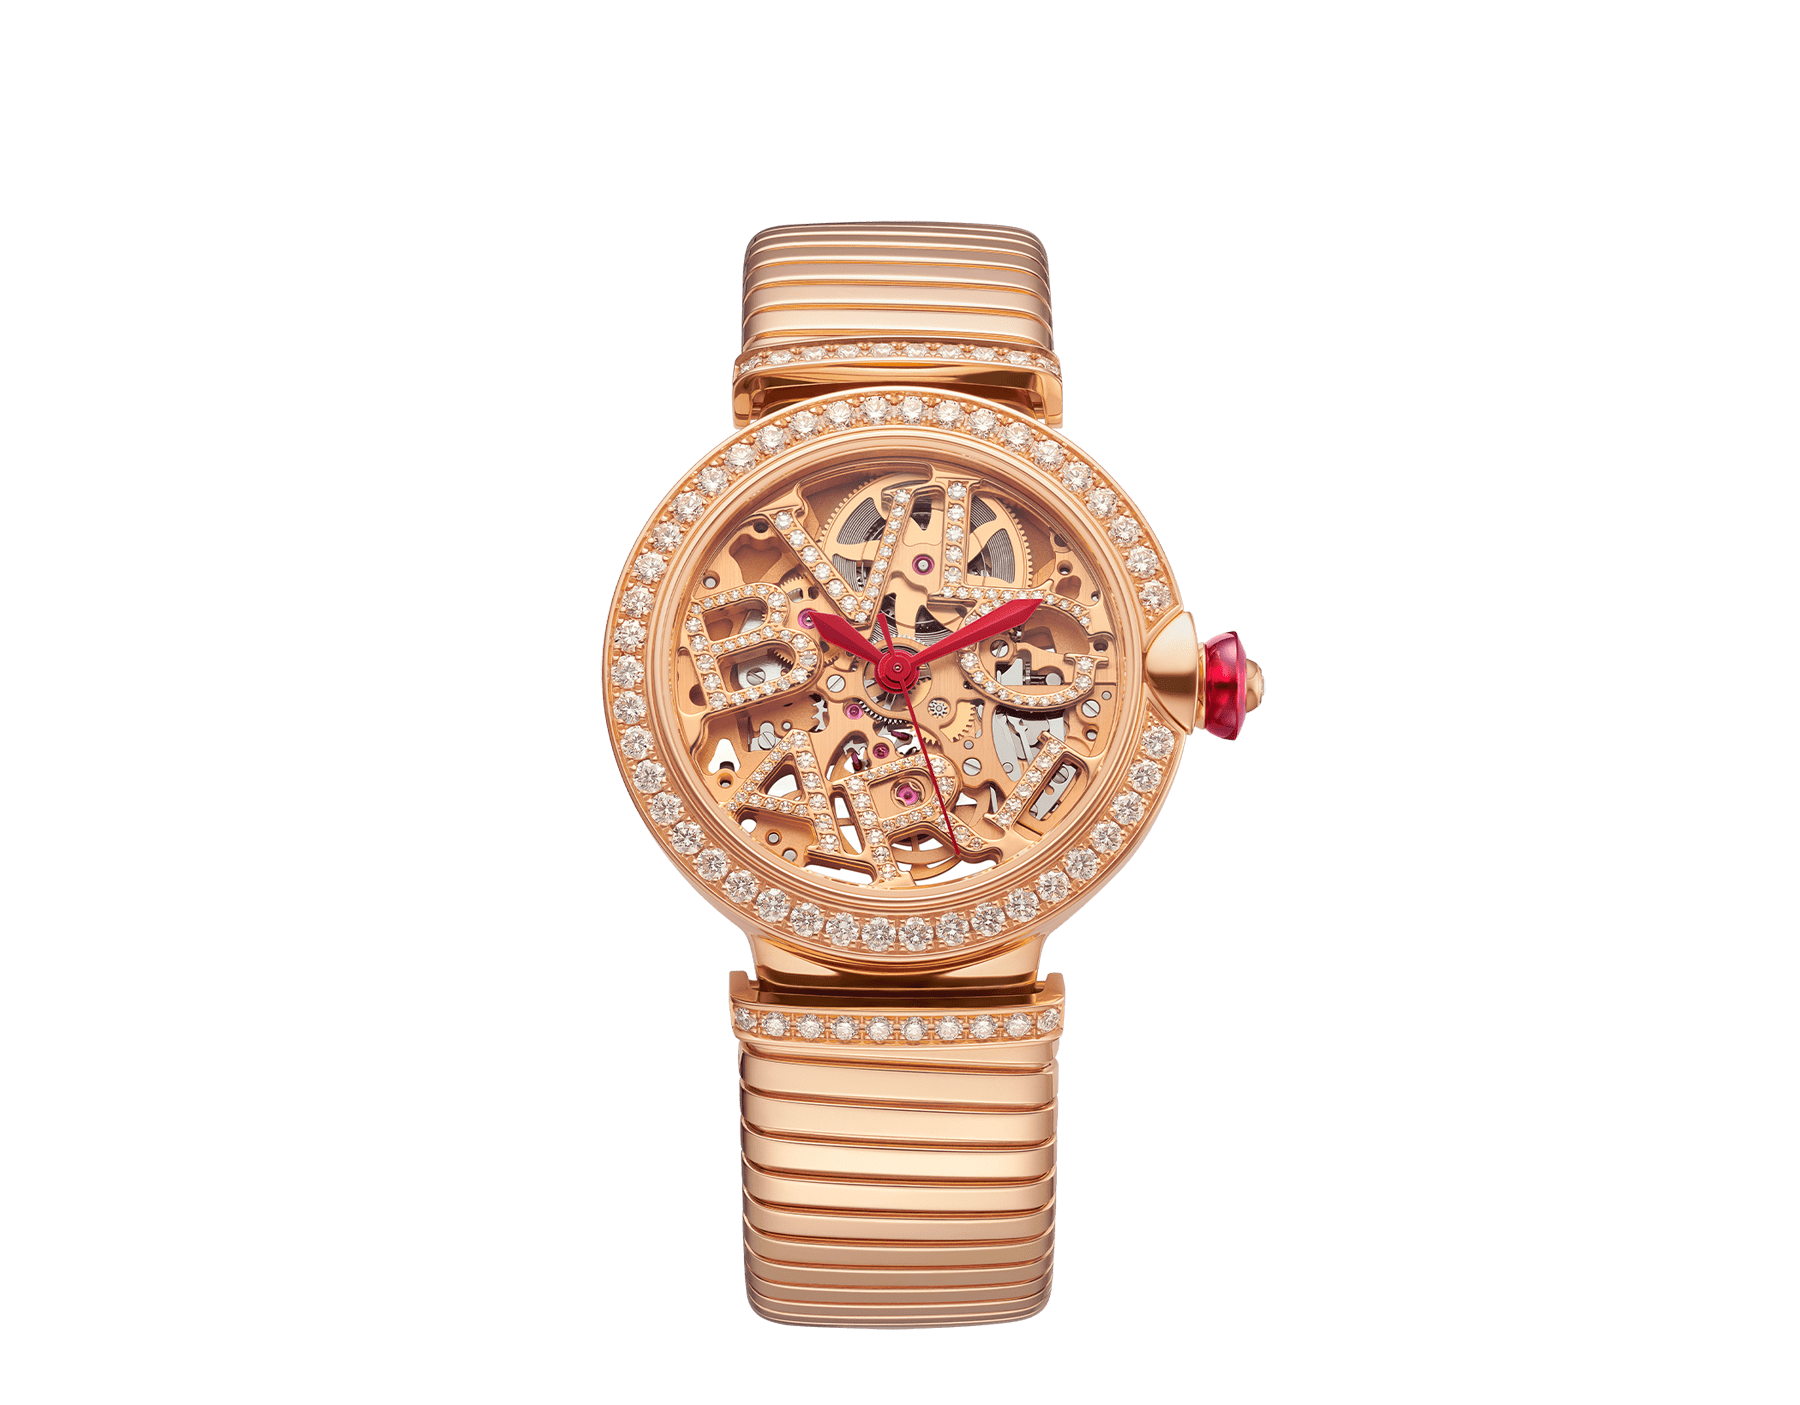 LVCEA Skeleton watch with mechanical manufacture movement, automatic winding and skeleton execution, 18 kt rose gold case, 18kt rose gold bezel set with diamonds, 18 kt rose gold openwork BVLGARI logo dial set with round brilliant-cut diamonds, red hands and 18 kt rose gold tubogas bracelet. Exclusive Edition for the United States 103134 image 1